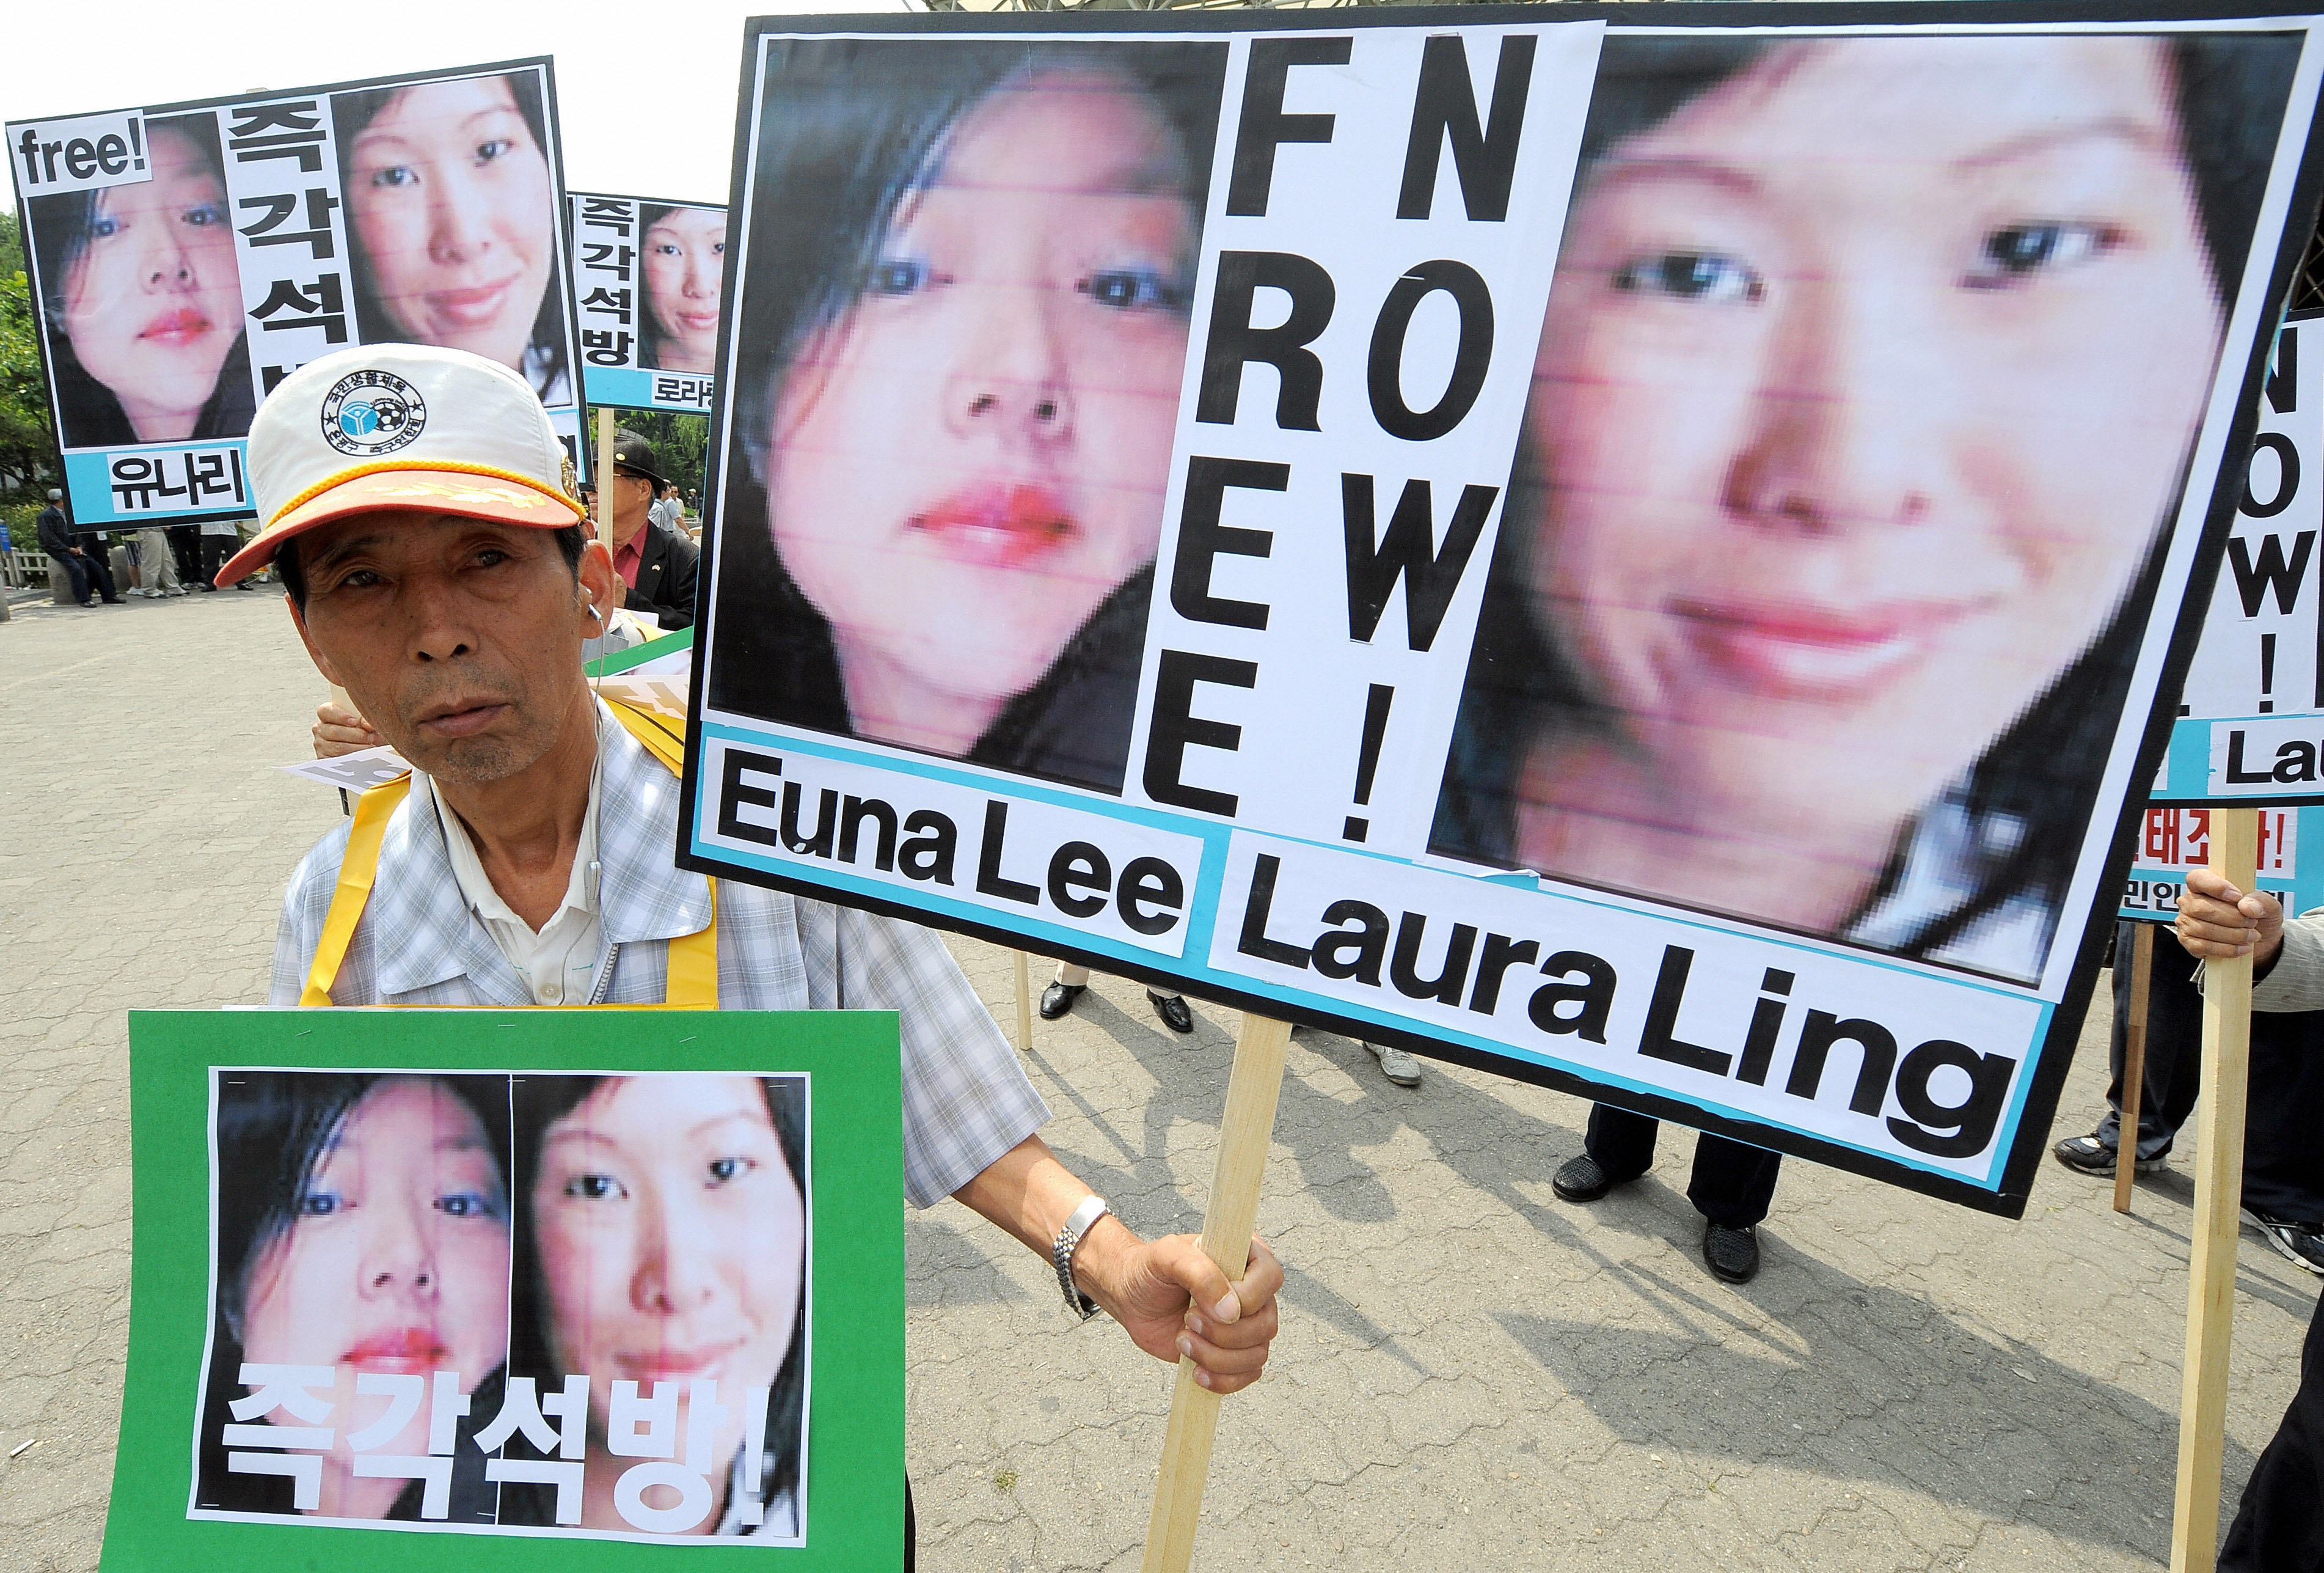 A South Korean activist holding pictures of U.S. journalists Euna Lee and Laura Ling